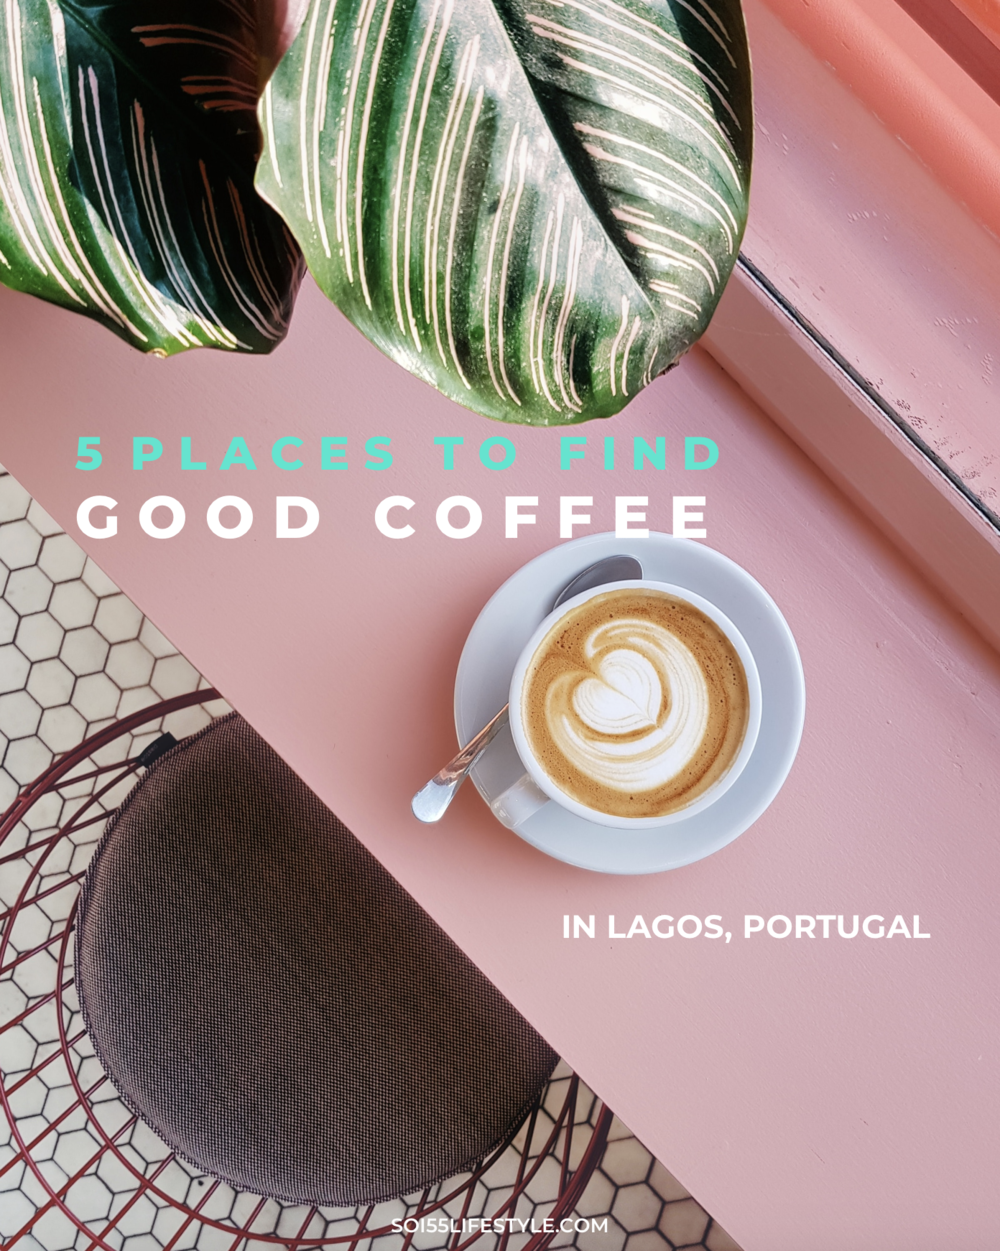 best-coffee-lagos-portugal.jpg